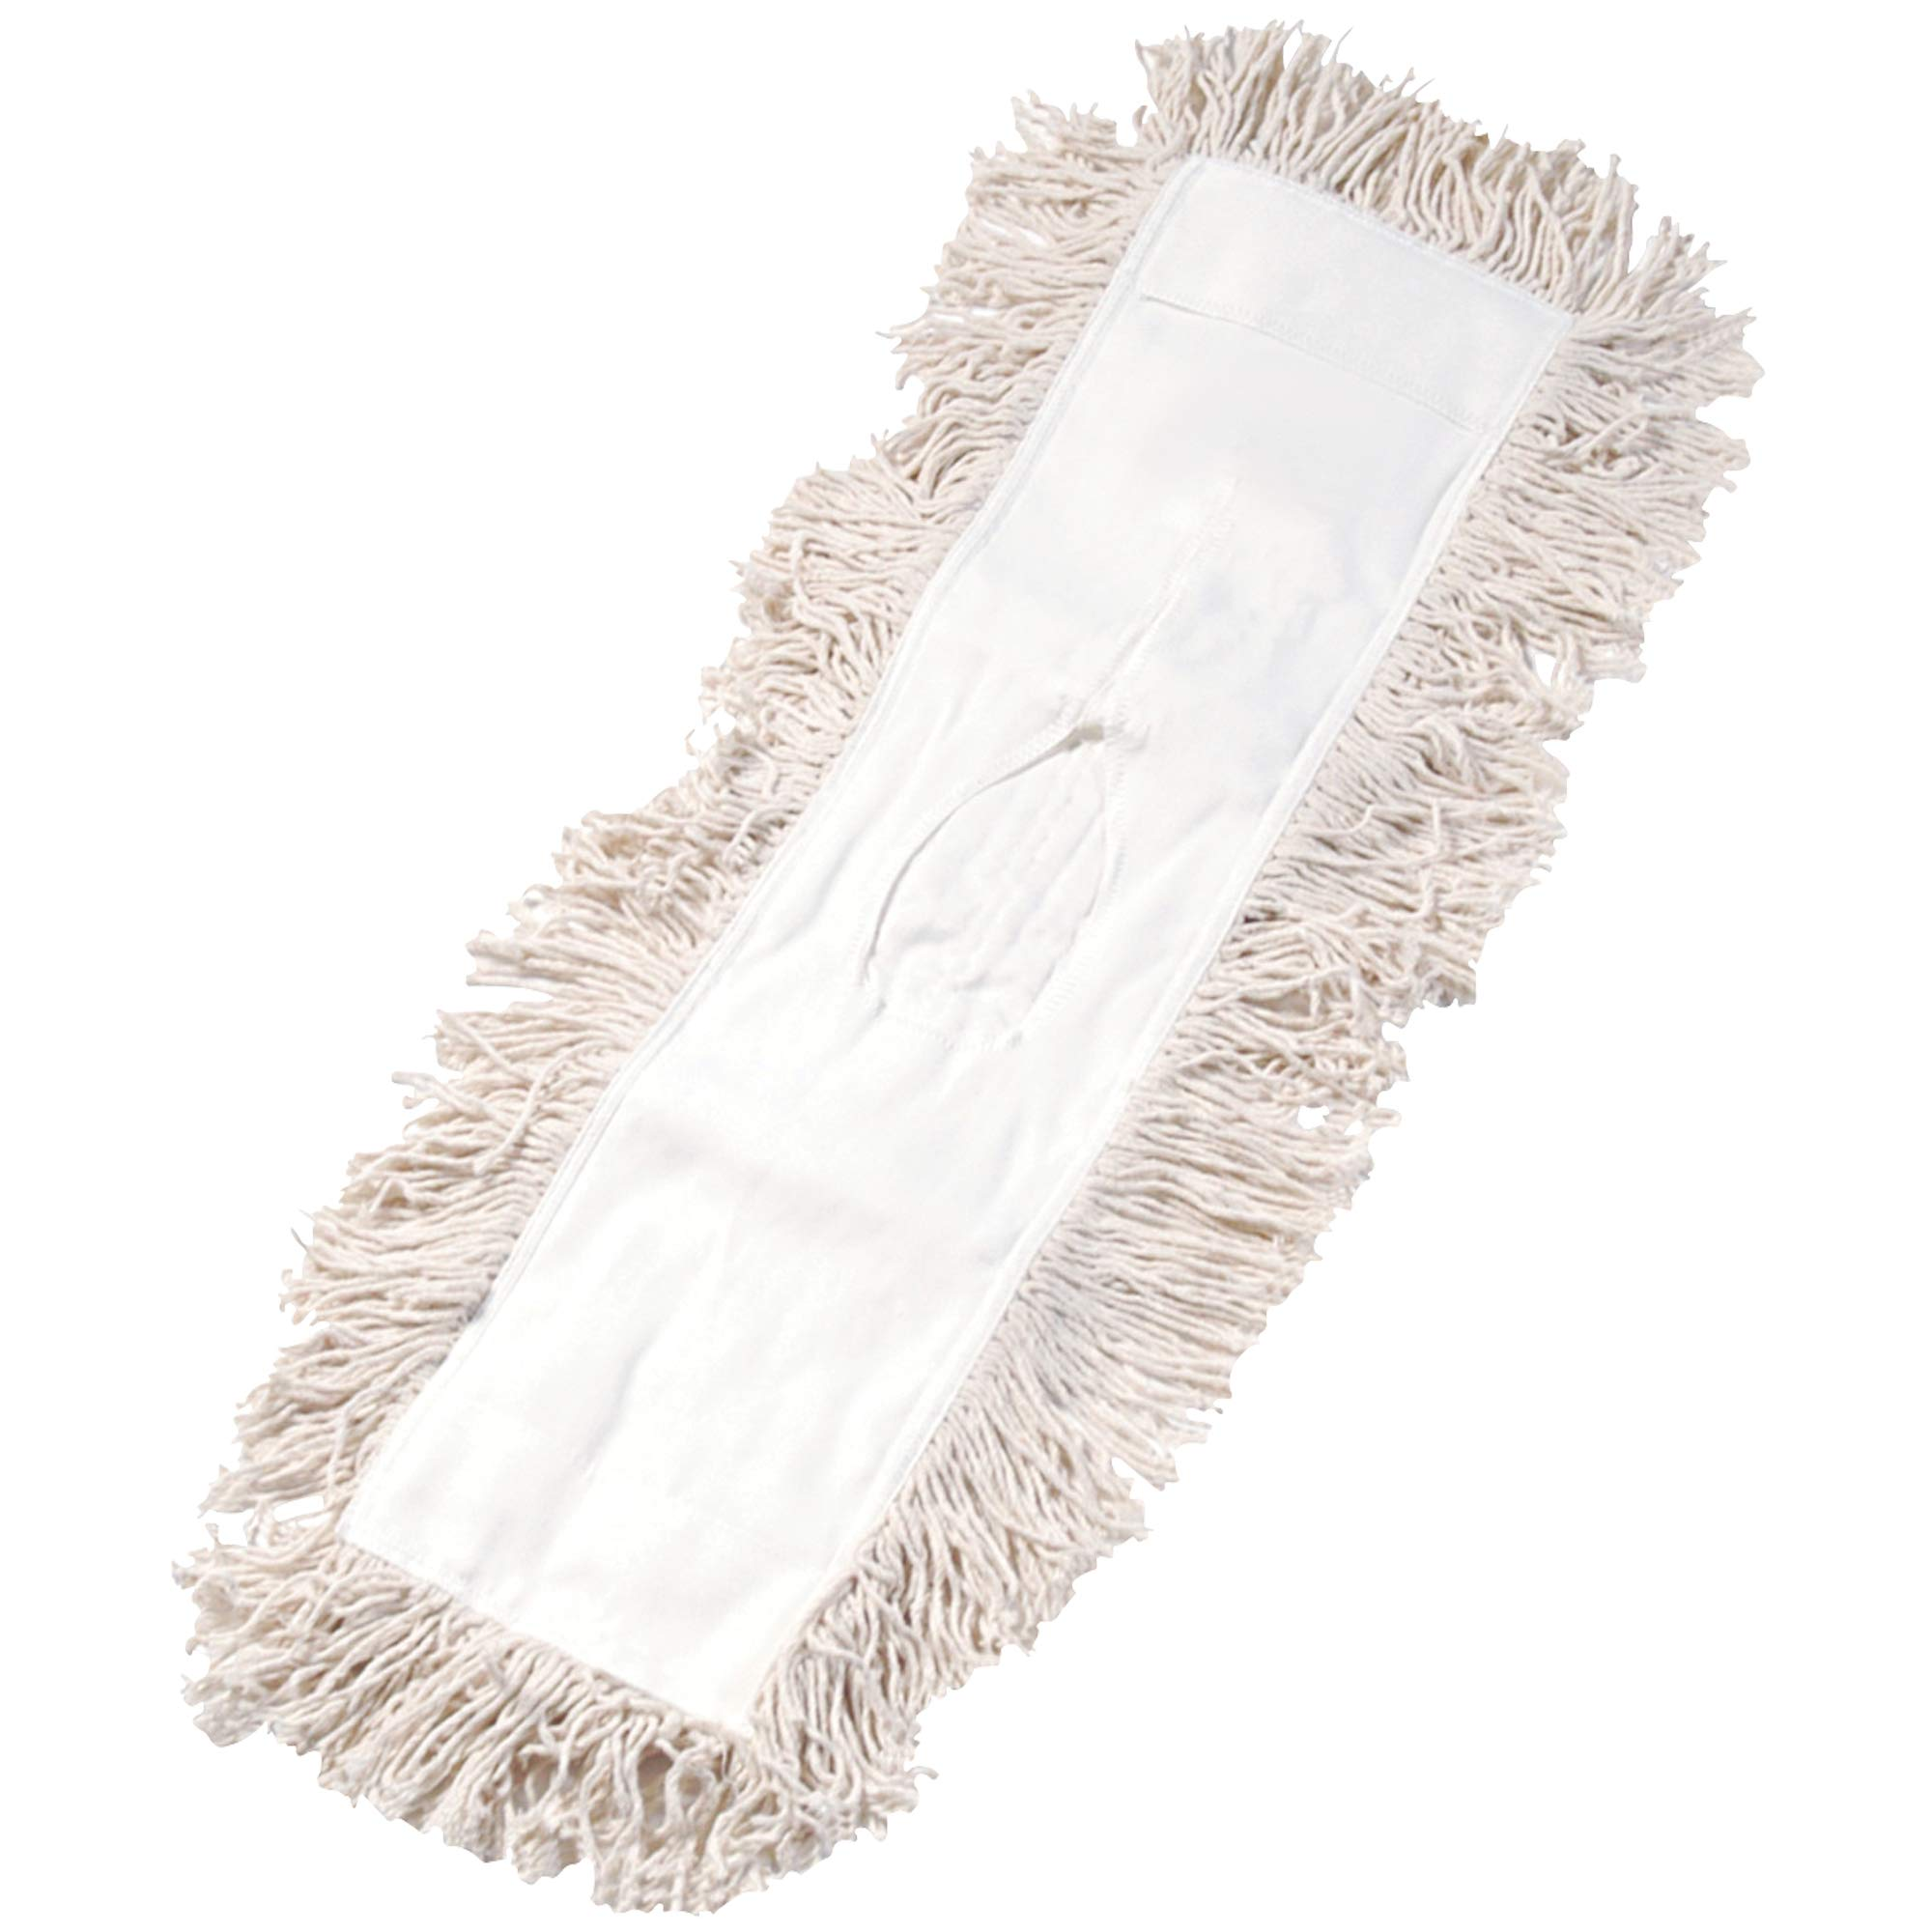 Economy Cut-End Dust Mop Head, 24'', White, 1/Each by Ship Now Supply